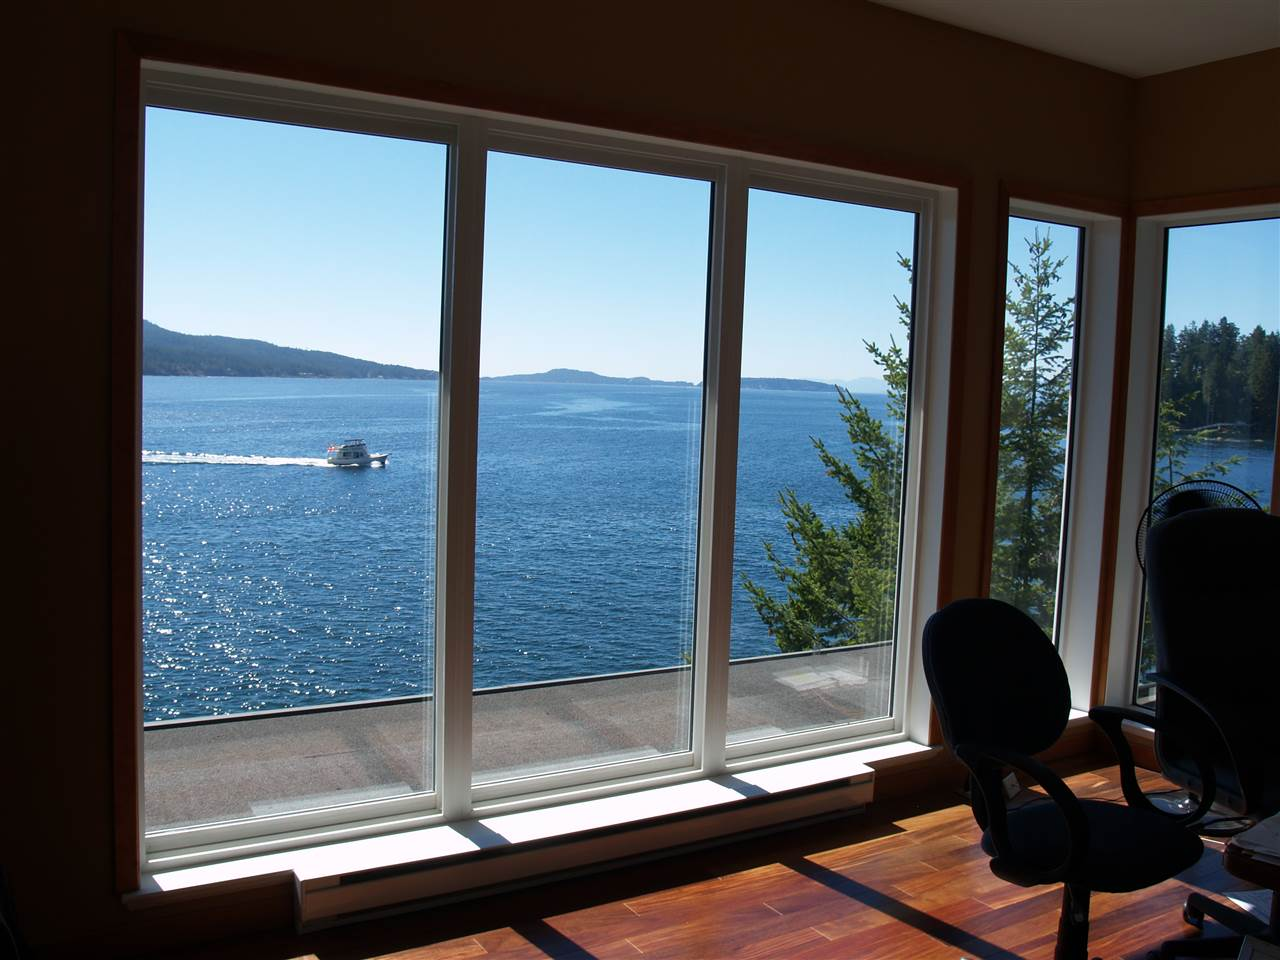 "Photo 16: Photos: 12424 ARBUTUS LANDING Road in Pender Harbour: Pender Harbour Egmont House for sale in ""ARBUTUS LANDING/BEAVER ISLAND"" (Sunshine Coast)  : MLS® # R2132671"